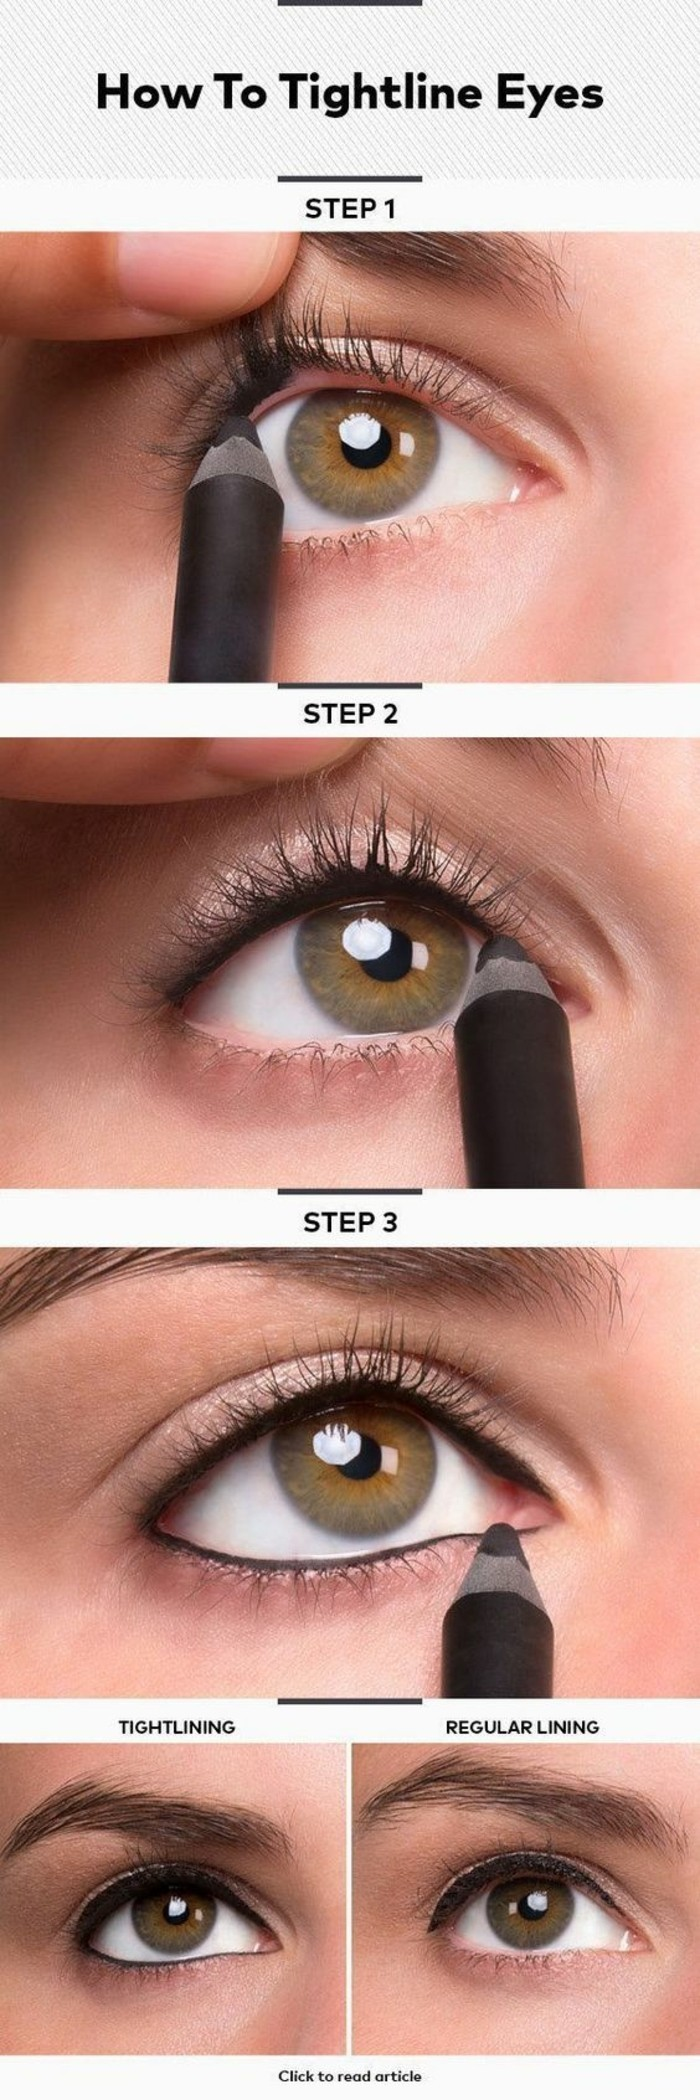 00-maquillage-année-60-maquillage-yeux-ronds-noisette-comment-se-maquiller